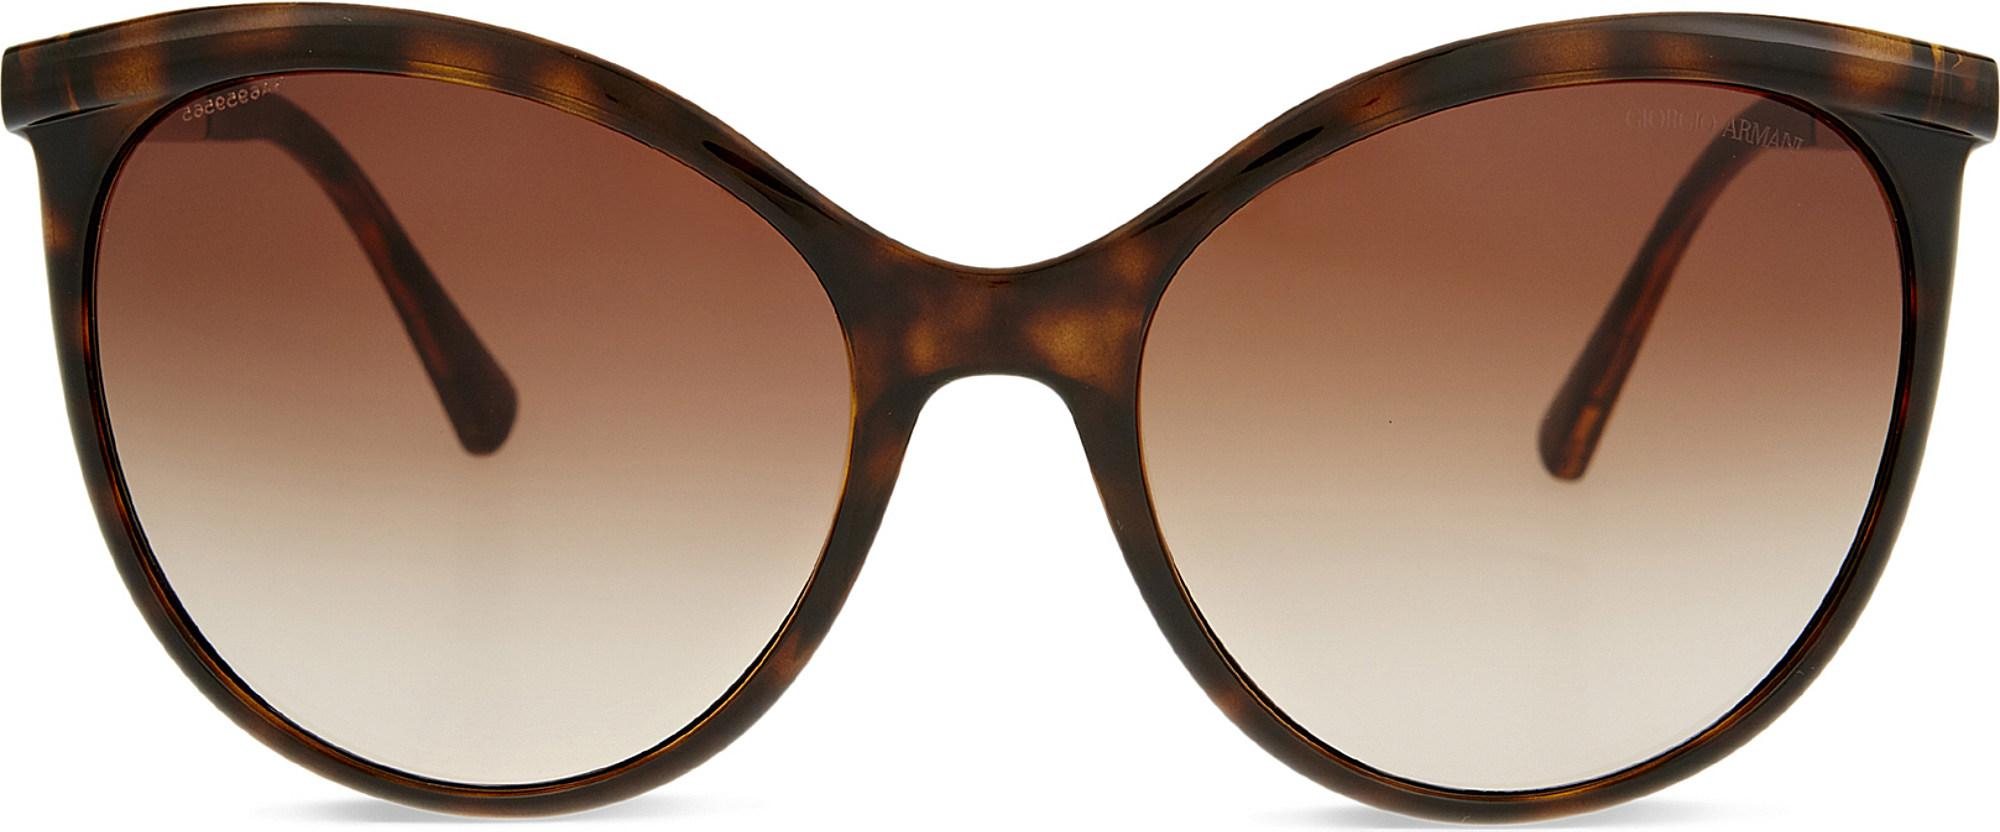 ea4e274a37c Gallery. Previously sold at  Selfridges · Women s Cat Eye Sunglasses ...